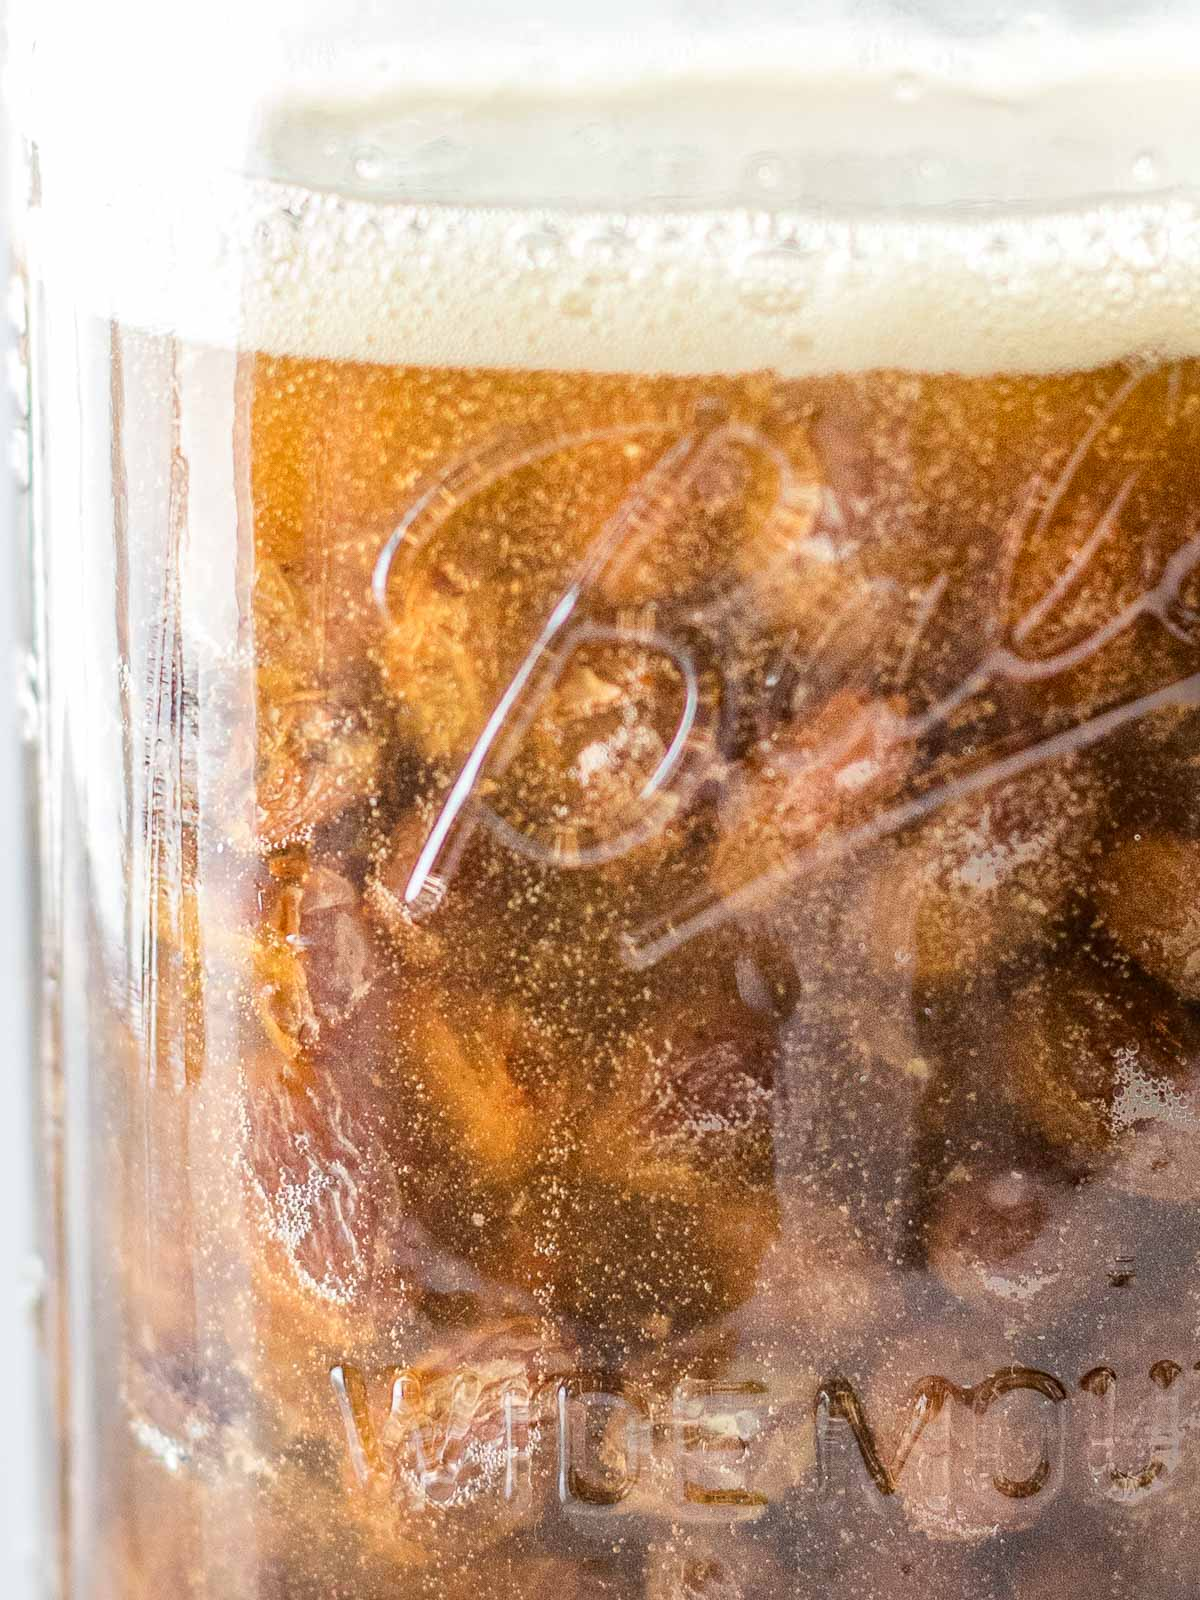 close up of raisin yeast water with bubbles and a foam layer